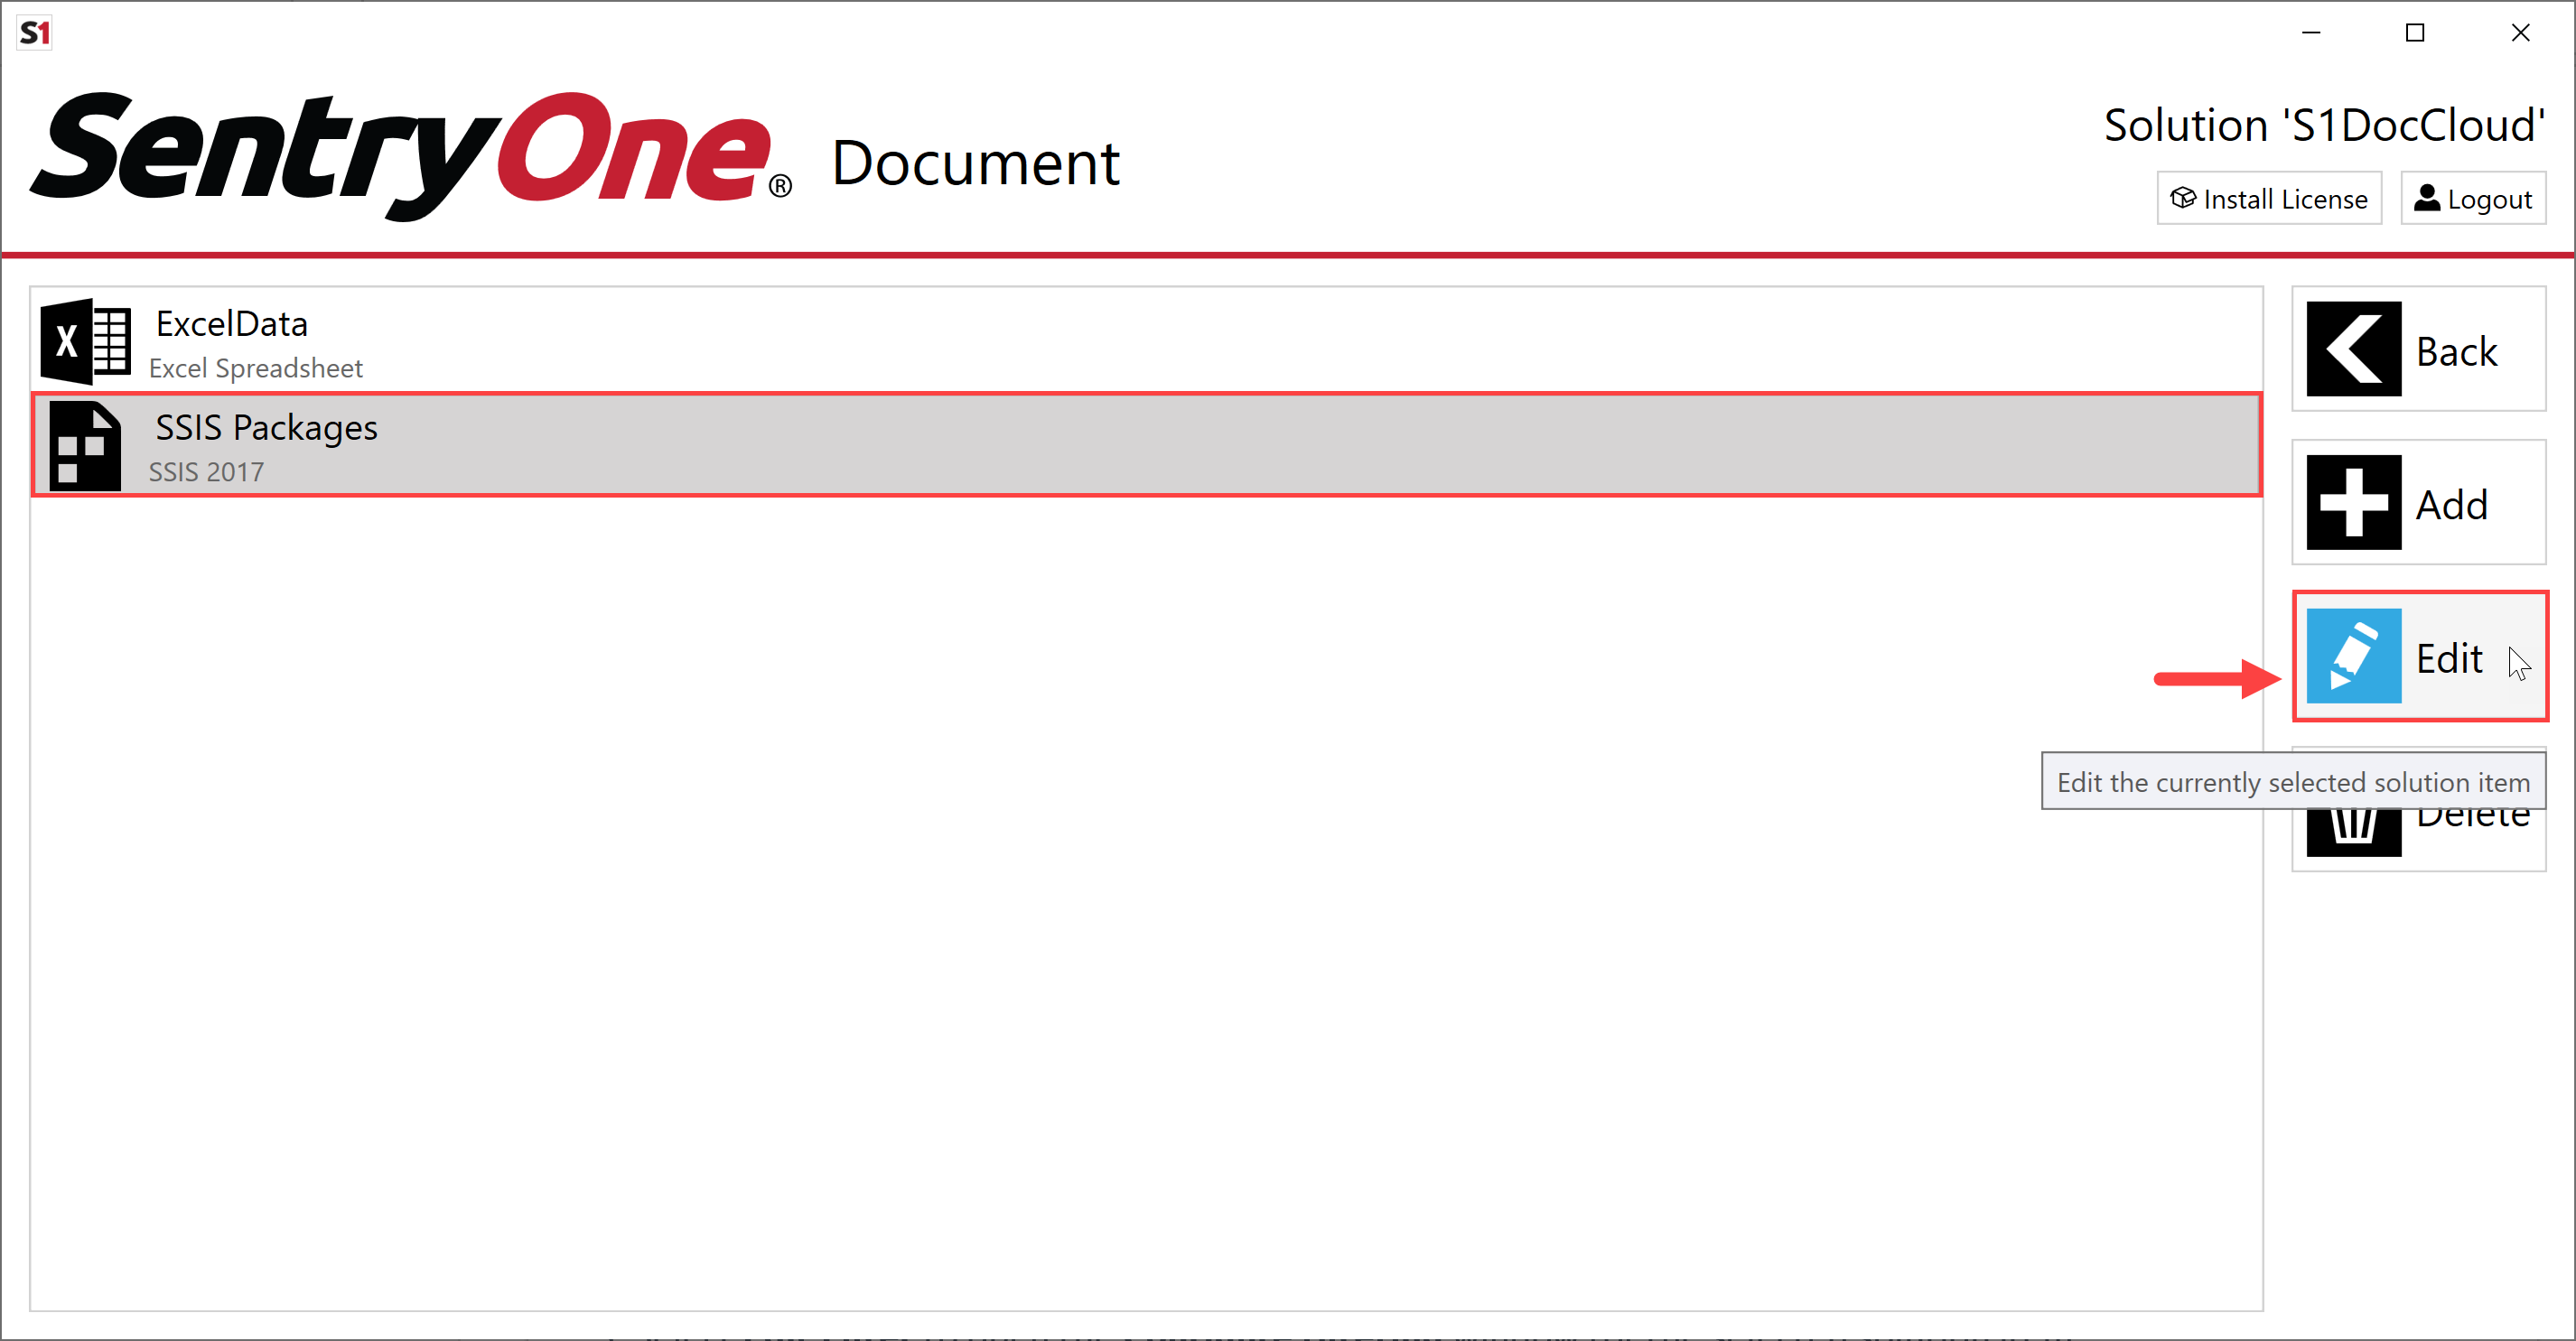 SentryOne Document SentryOne Document Edit Solution item